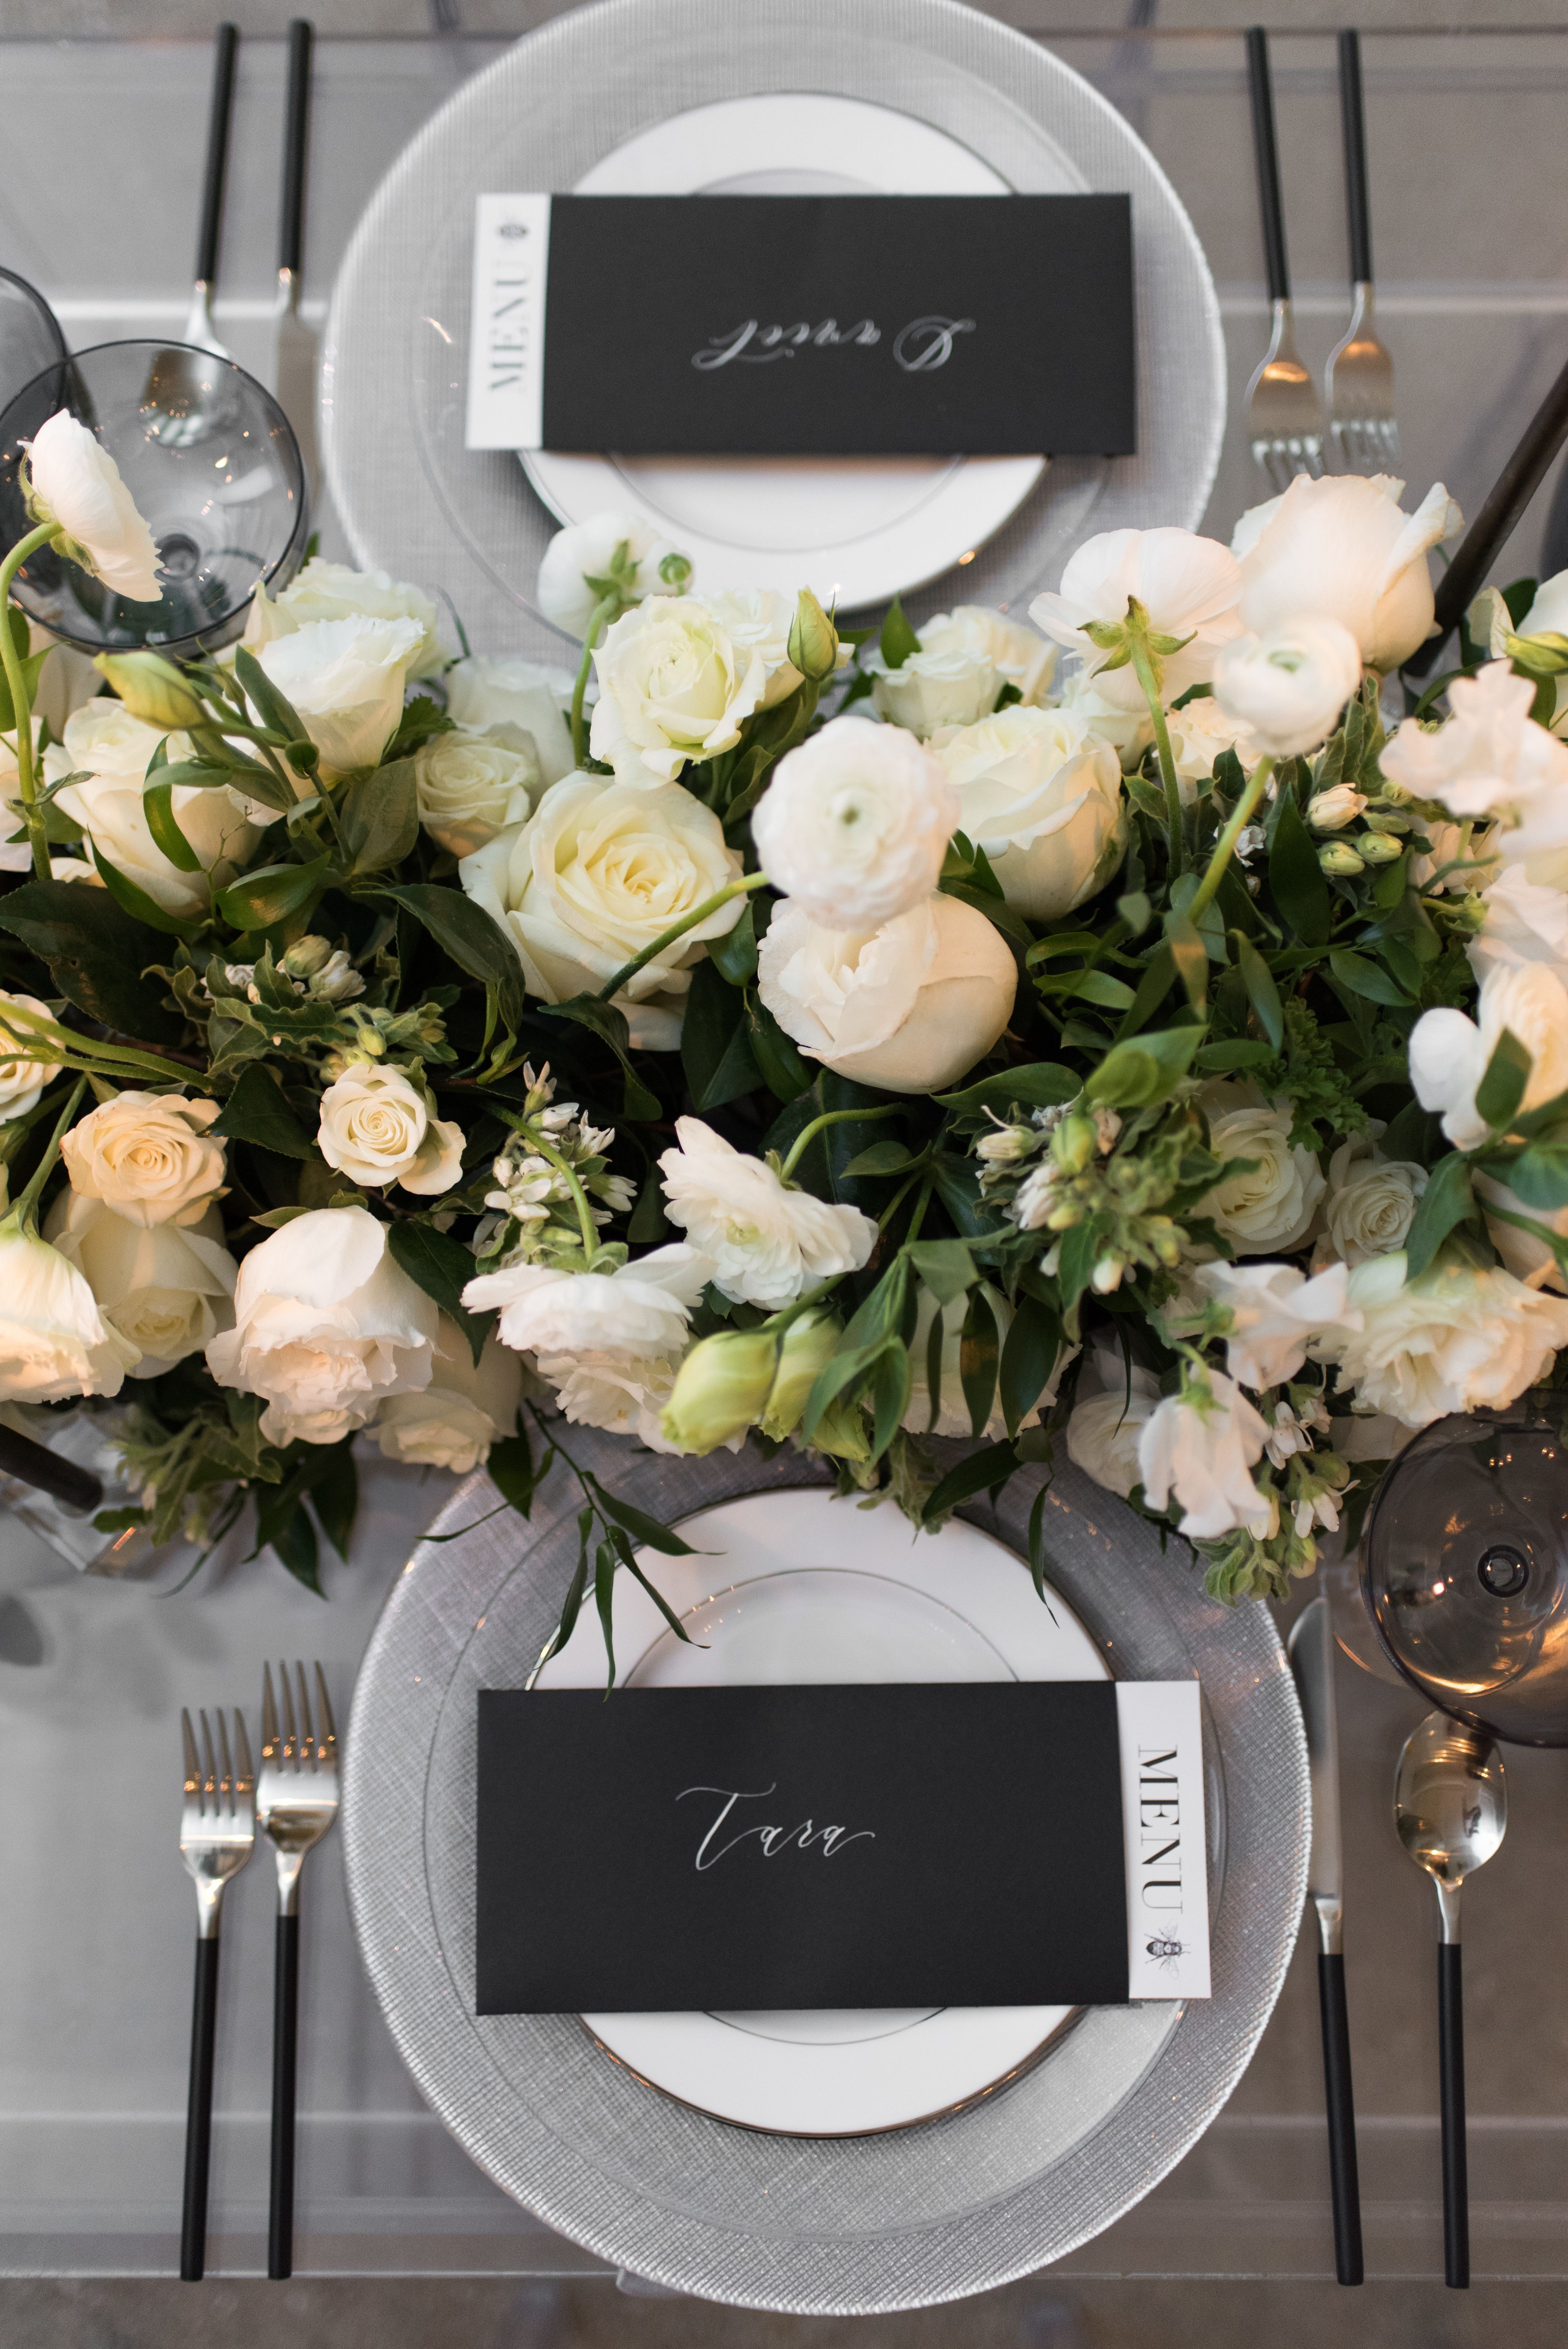 How To Create Your Own Wedding Brand In Five Steps White Table Settings Modern Wedding Reception White Weddings Reception